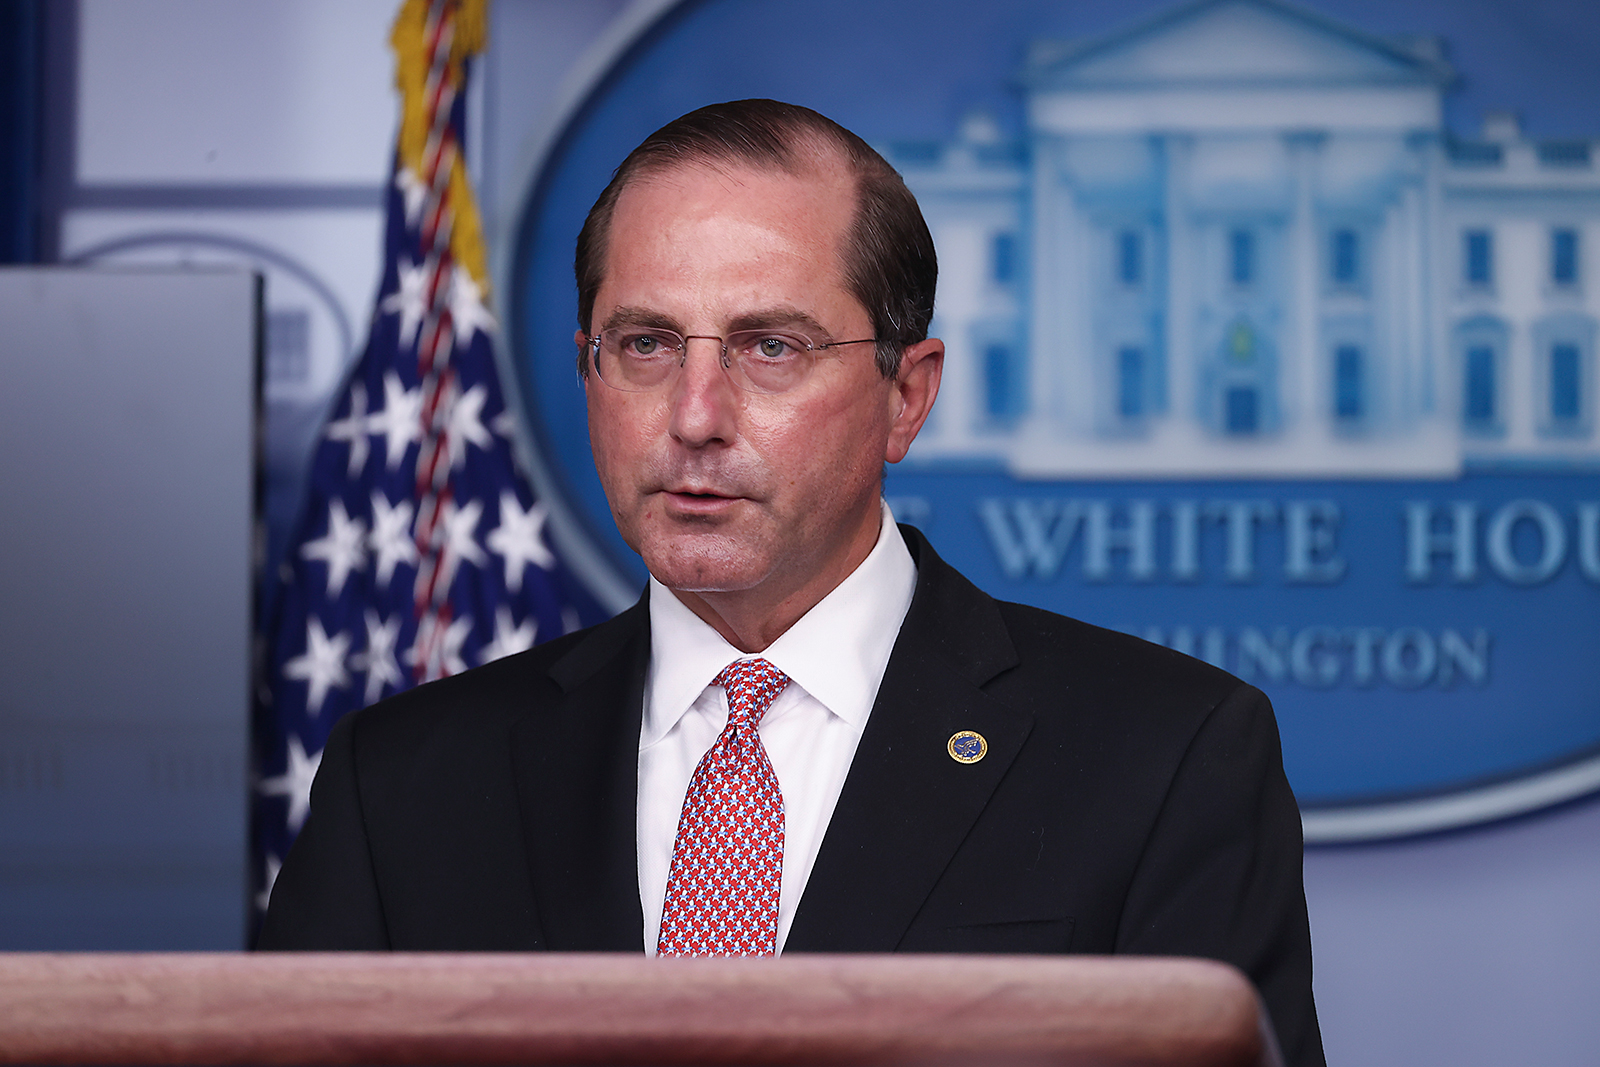 US Secretary of Health and Human Services Alex Azar speaks during a White House Coronavirus Task Force press briefing at the White House in Washington, DC, on November 19, 2020.